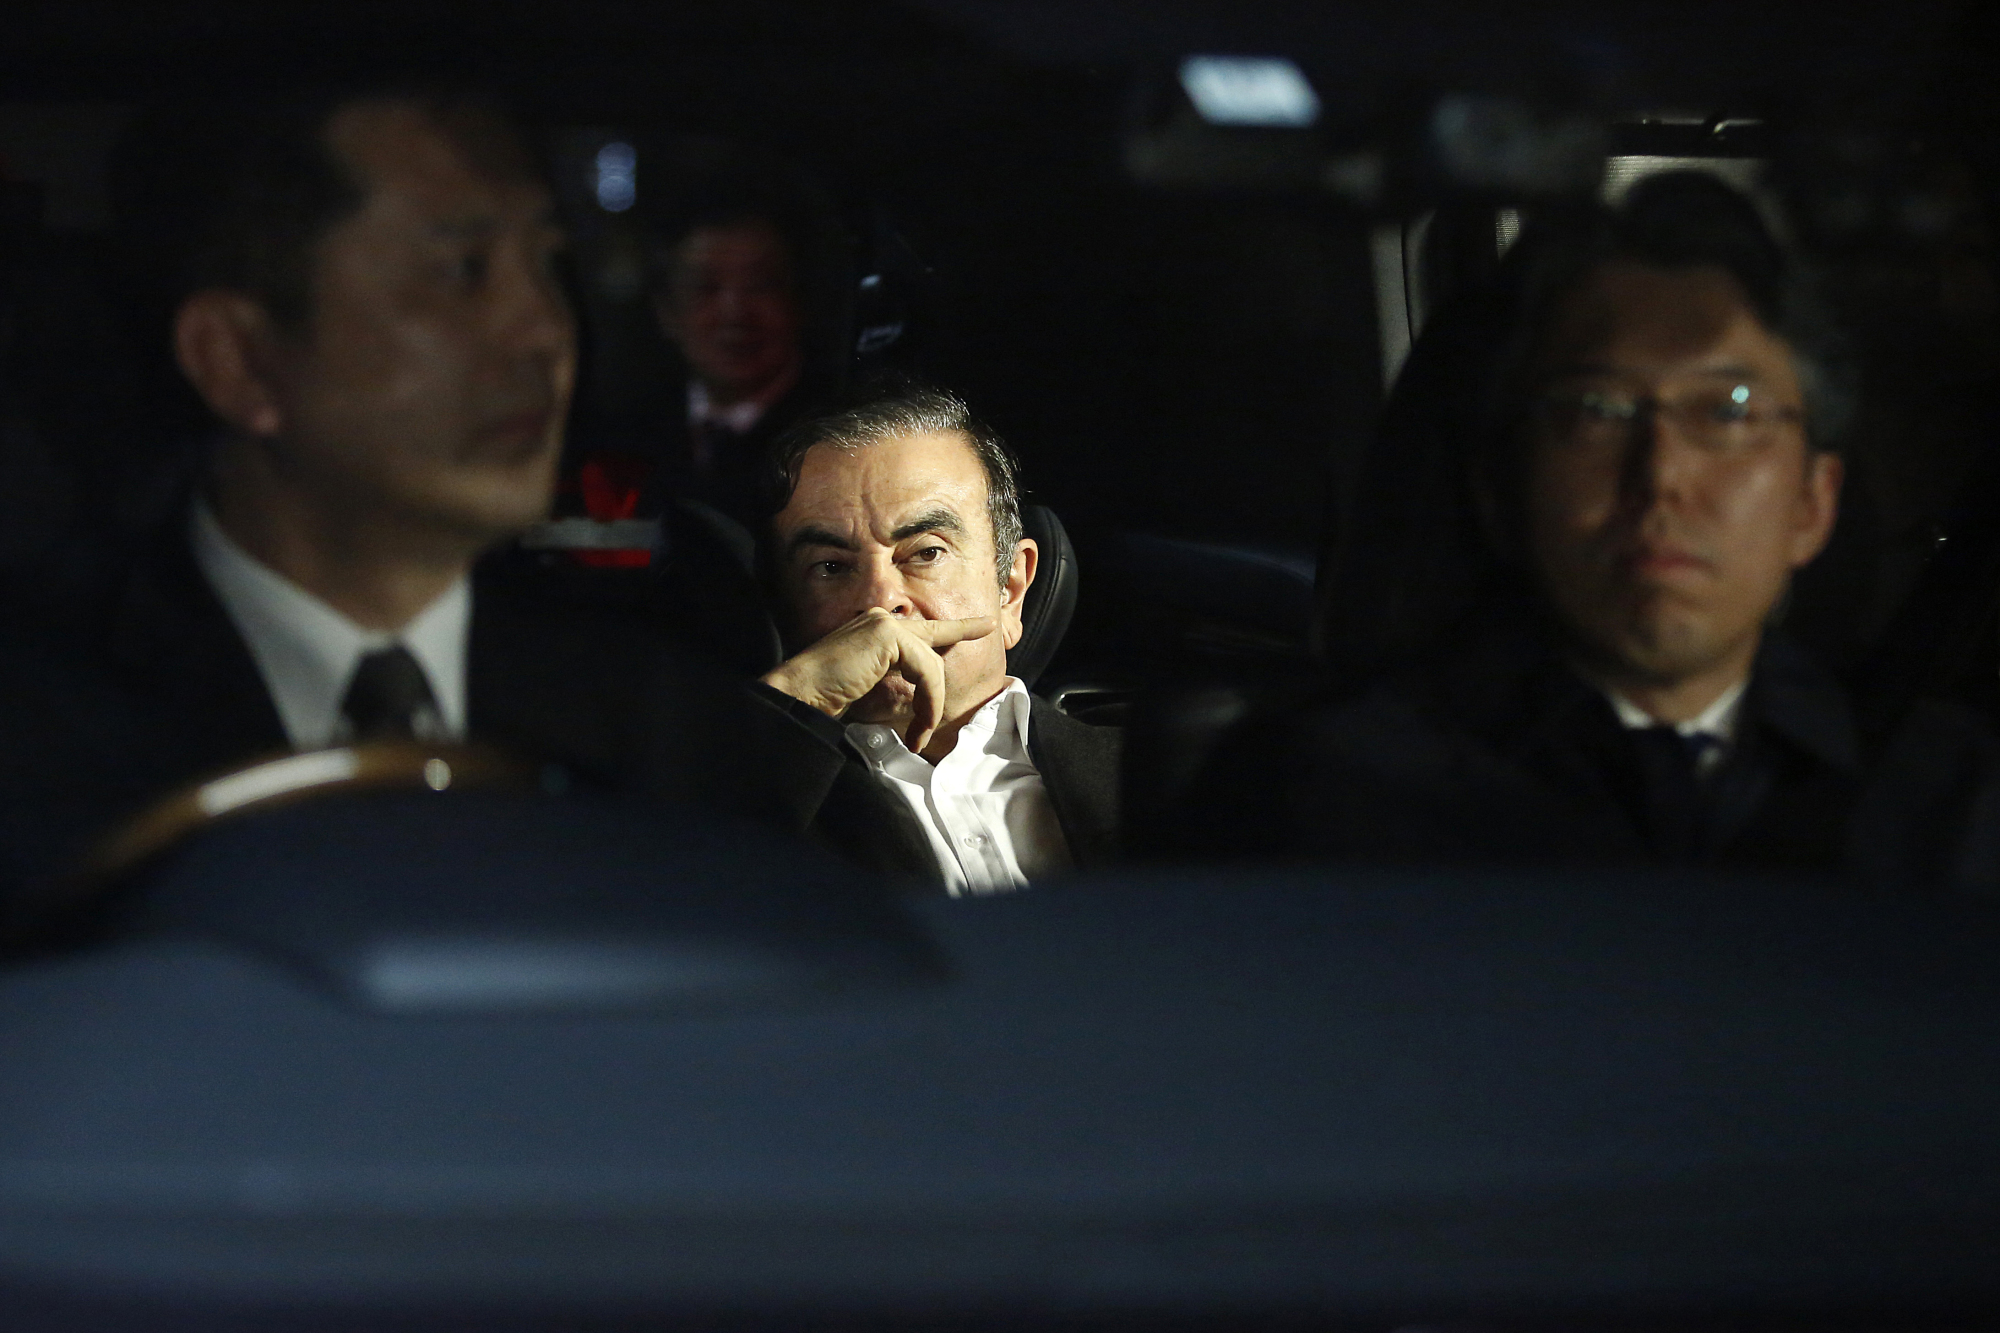 Carlos Ghosn, former chairman of Nissan Motor Co., leaves his lawyer's office in Tokyo on March 6 following his release from detention. He was rearrested April 4. | BLOOMBERG